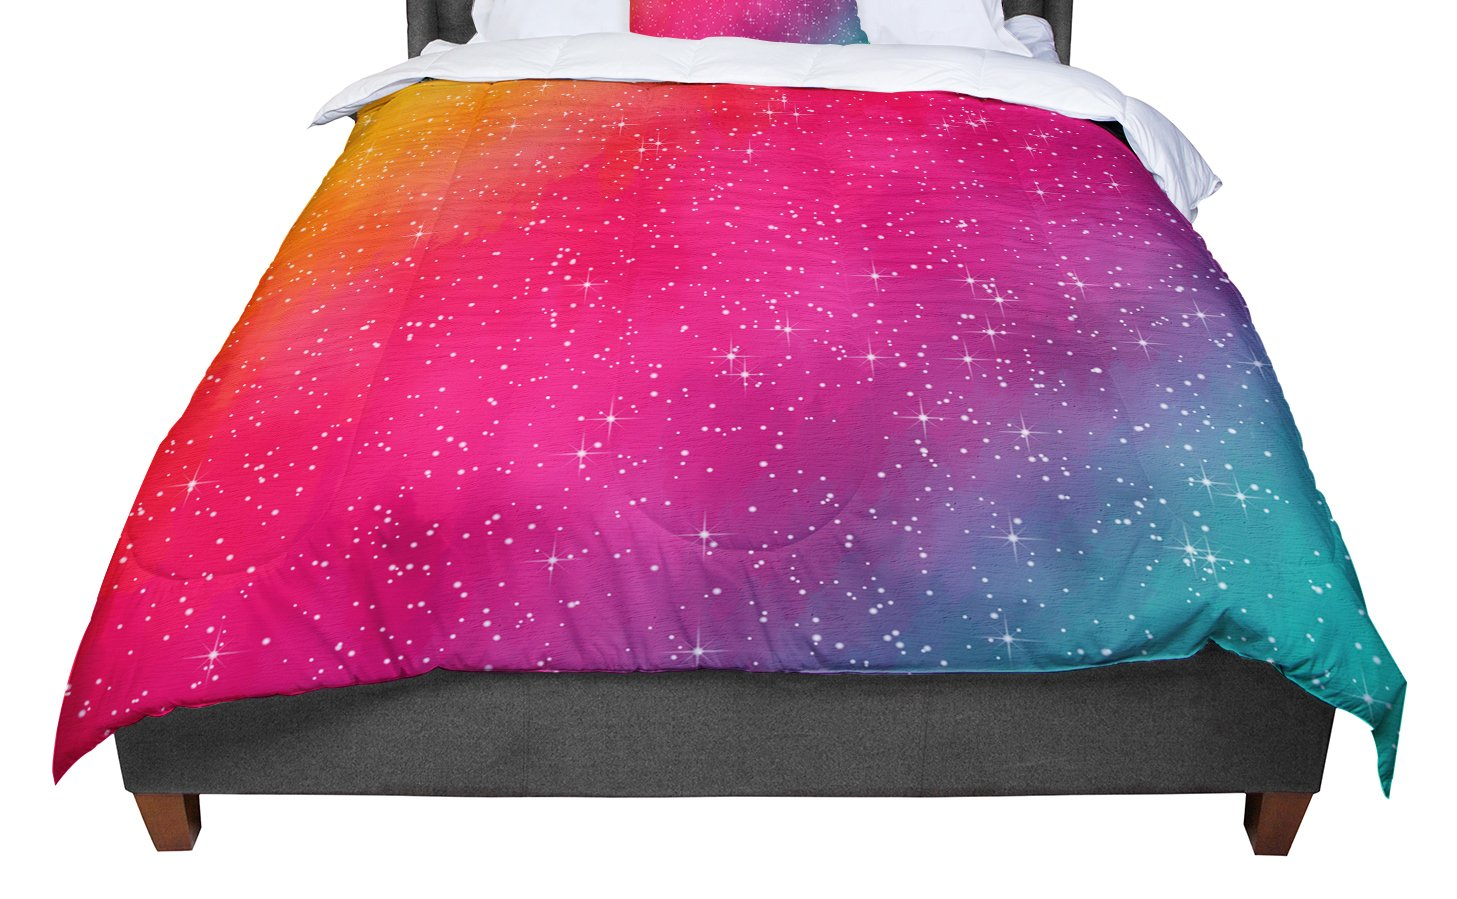 KESS InHouse Fotios Pavlopoulos 'Colorful Constellation' Pink Glam Twin Comforter, 68' X 88'